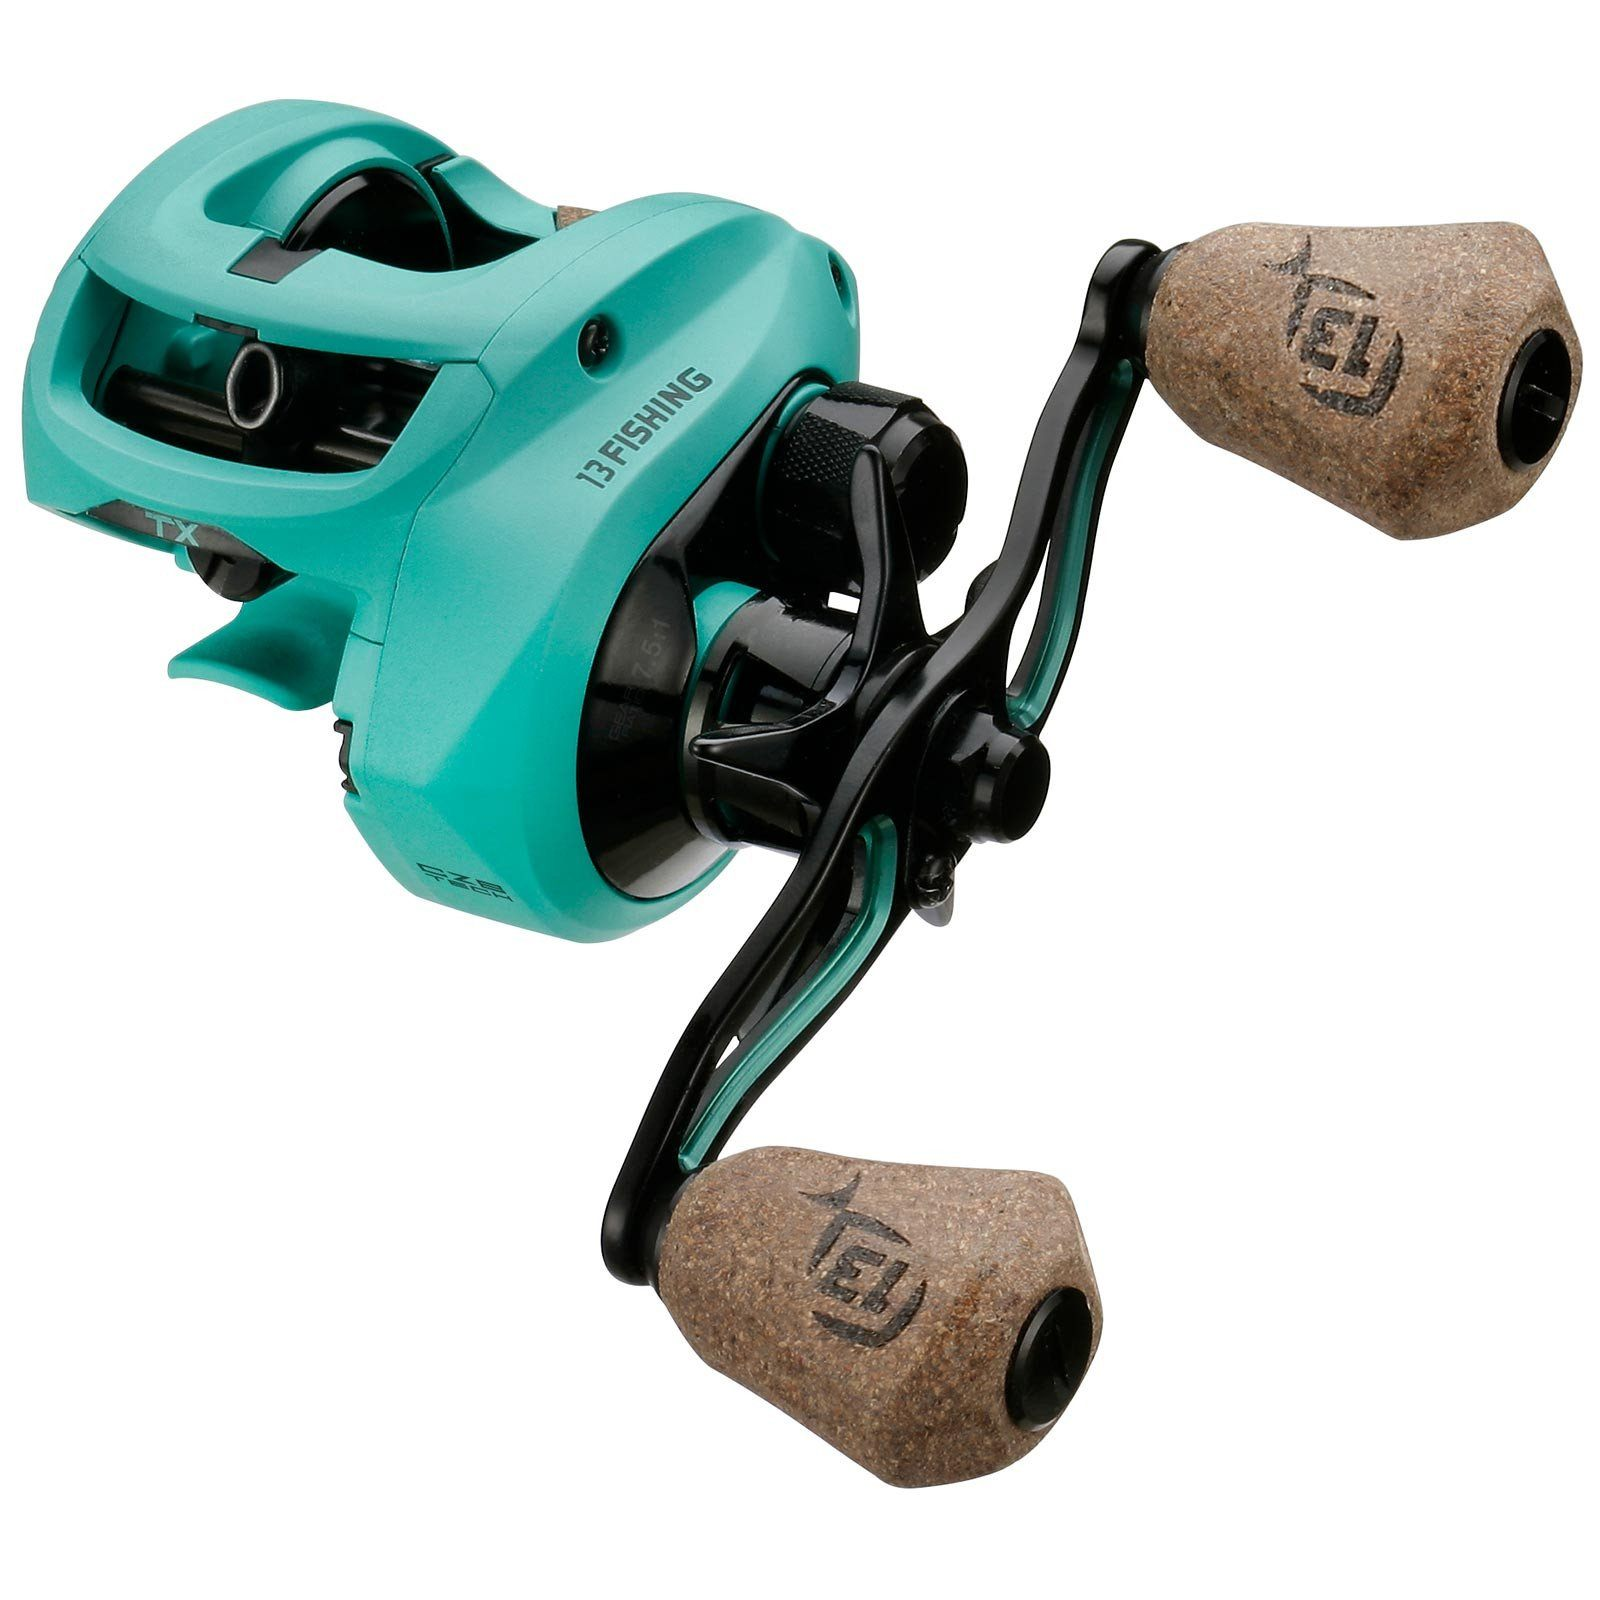 13 Fishing Concept TX Gen 2 Low-Profile Casting Reel Low Profile 13 Fishing